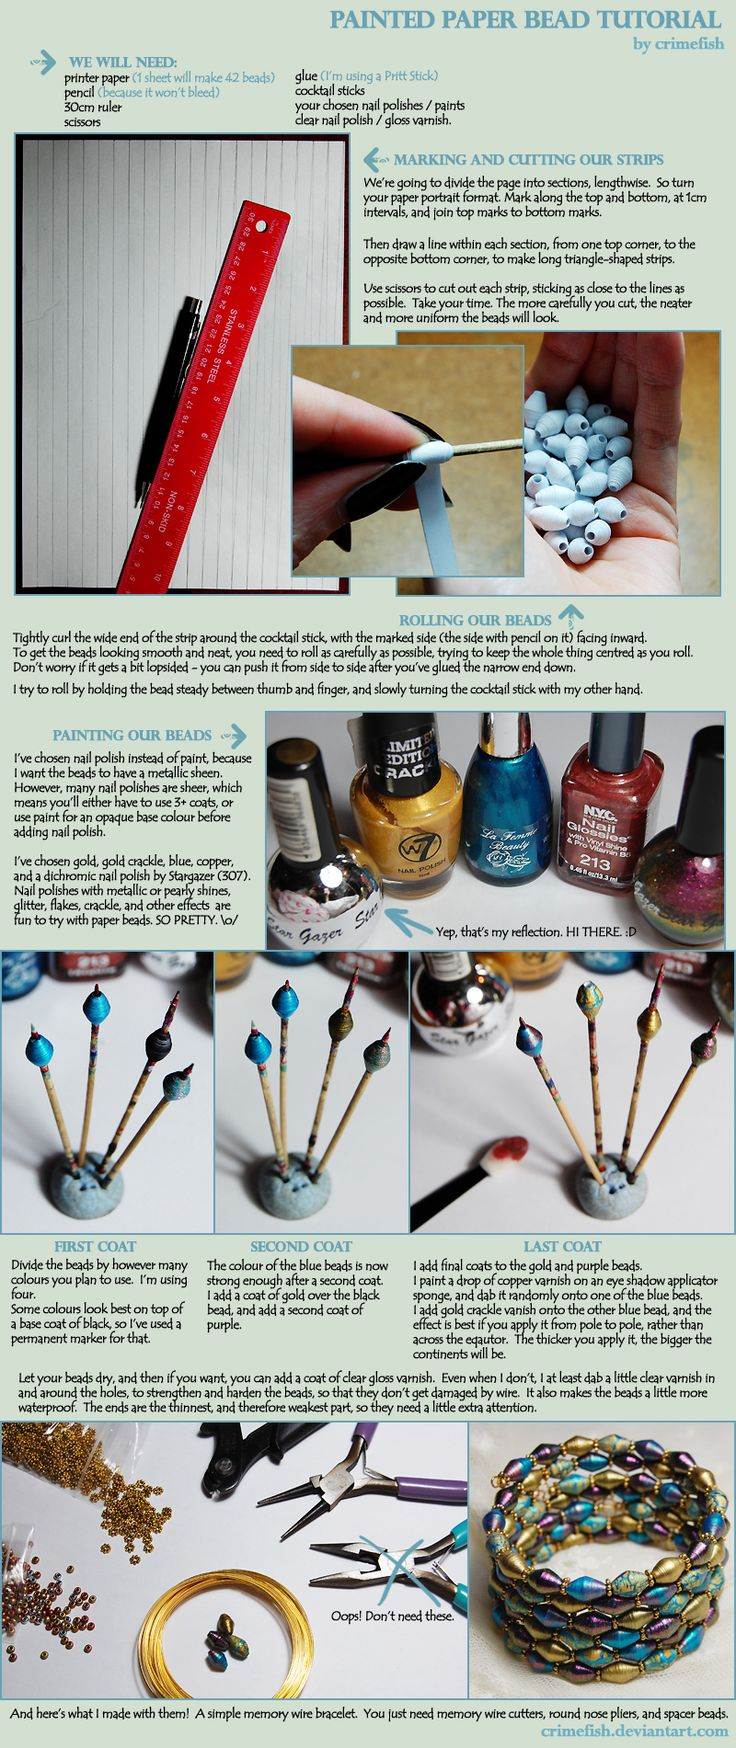 Painted Paper Bead Tutorial by *Crimefish on deviantART  #Paper #Beads